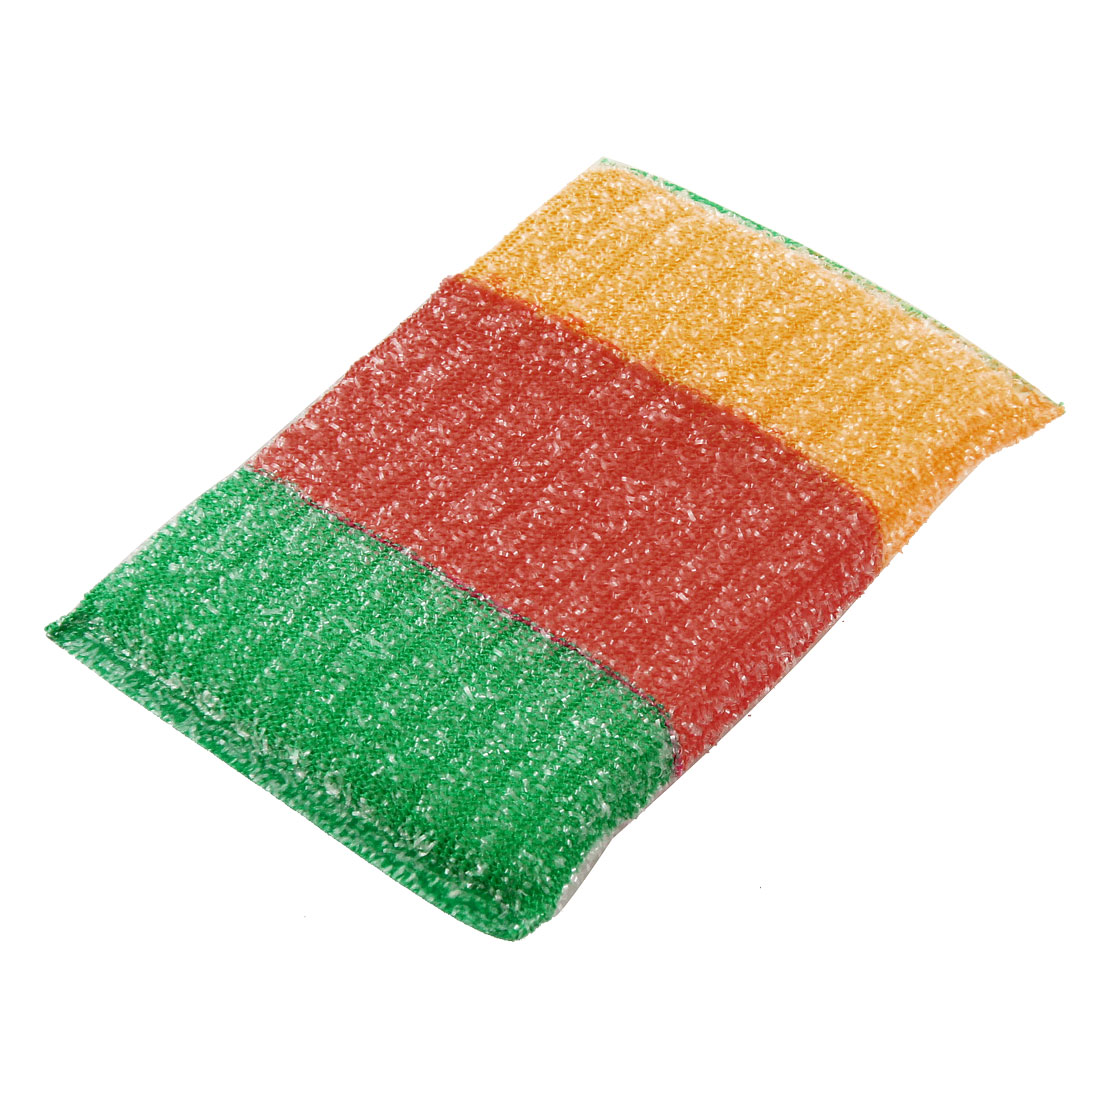 Kitchen Colorful Scrub Sponge Padded Dish Pad Bowl Cup Cleaner